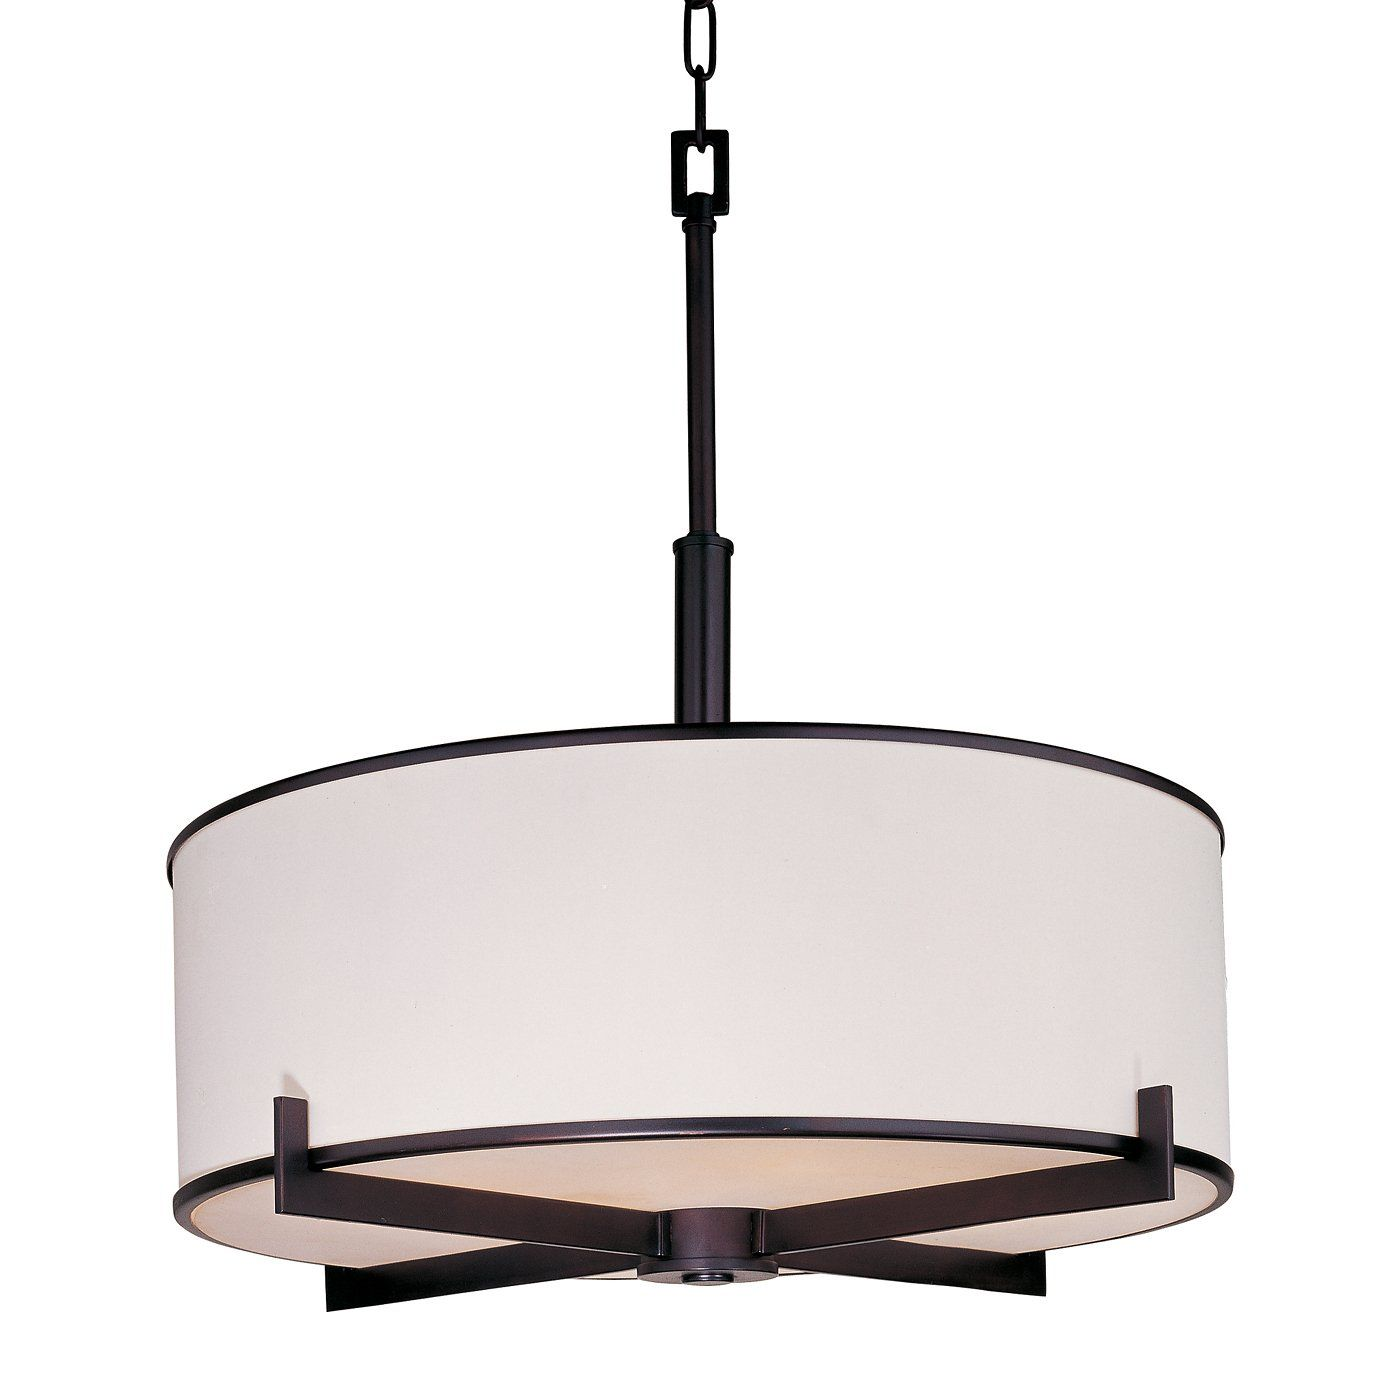 Maxim Lighting 12053Wt 4 Light Nexus Large Pendant  Lighting